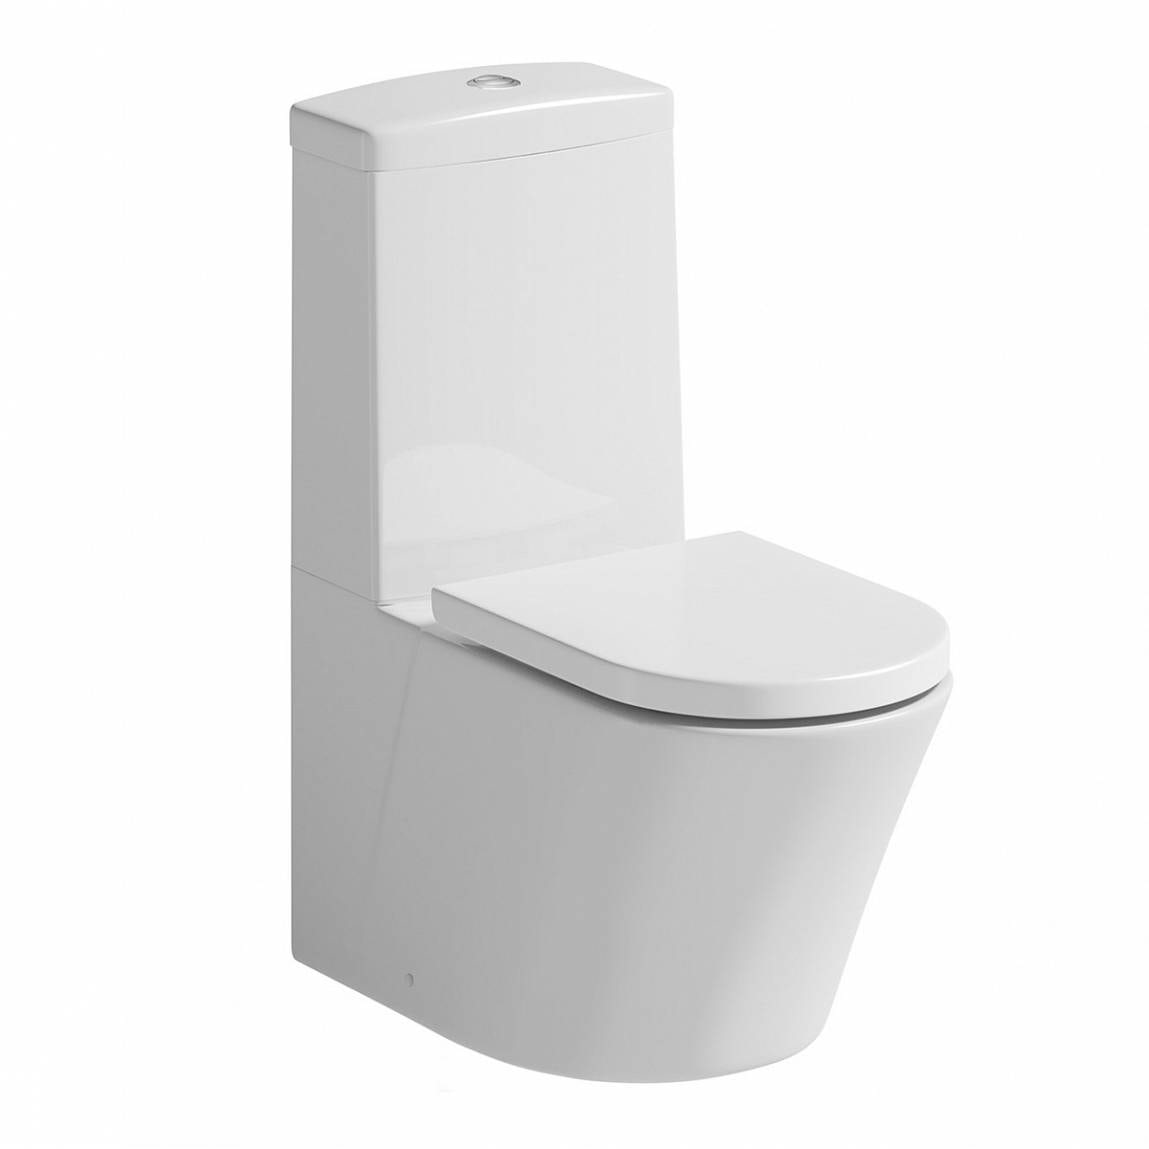 Mode Tate close coupled toilet with soft close seat with pan connector